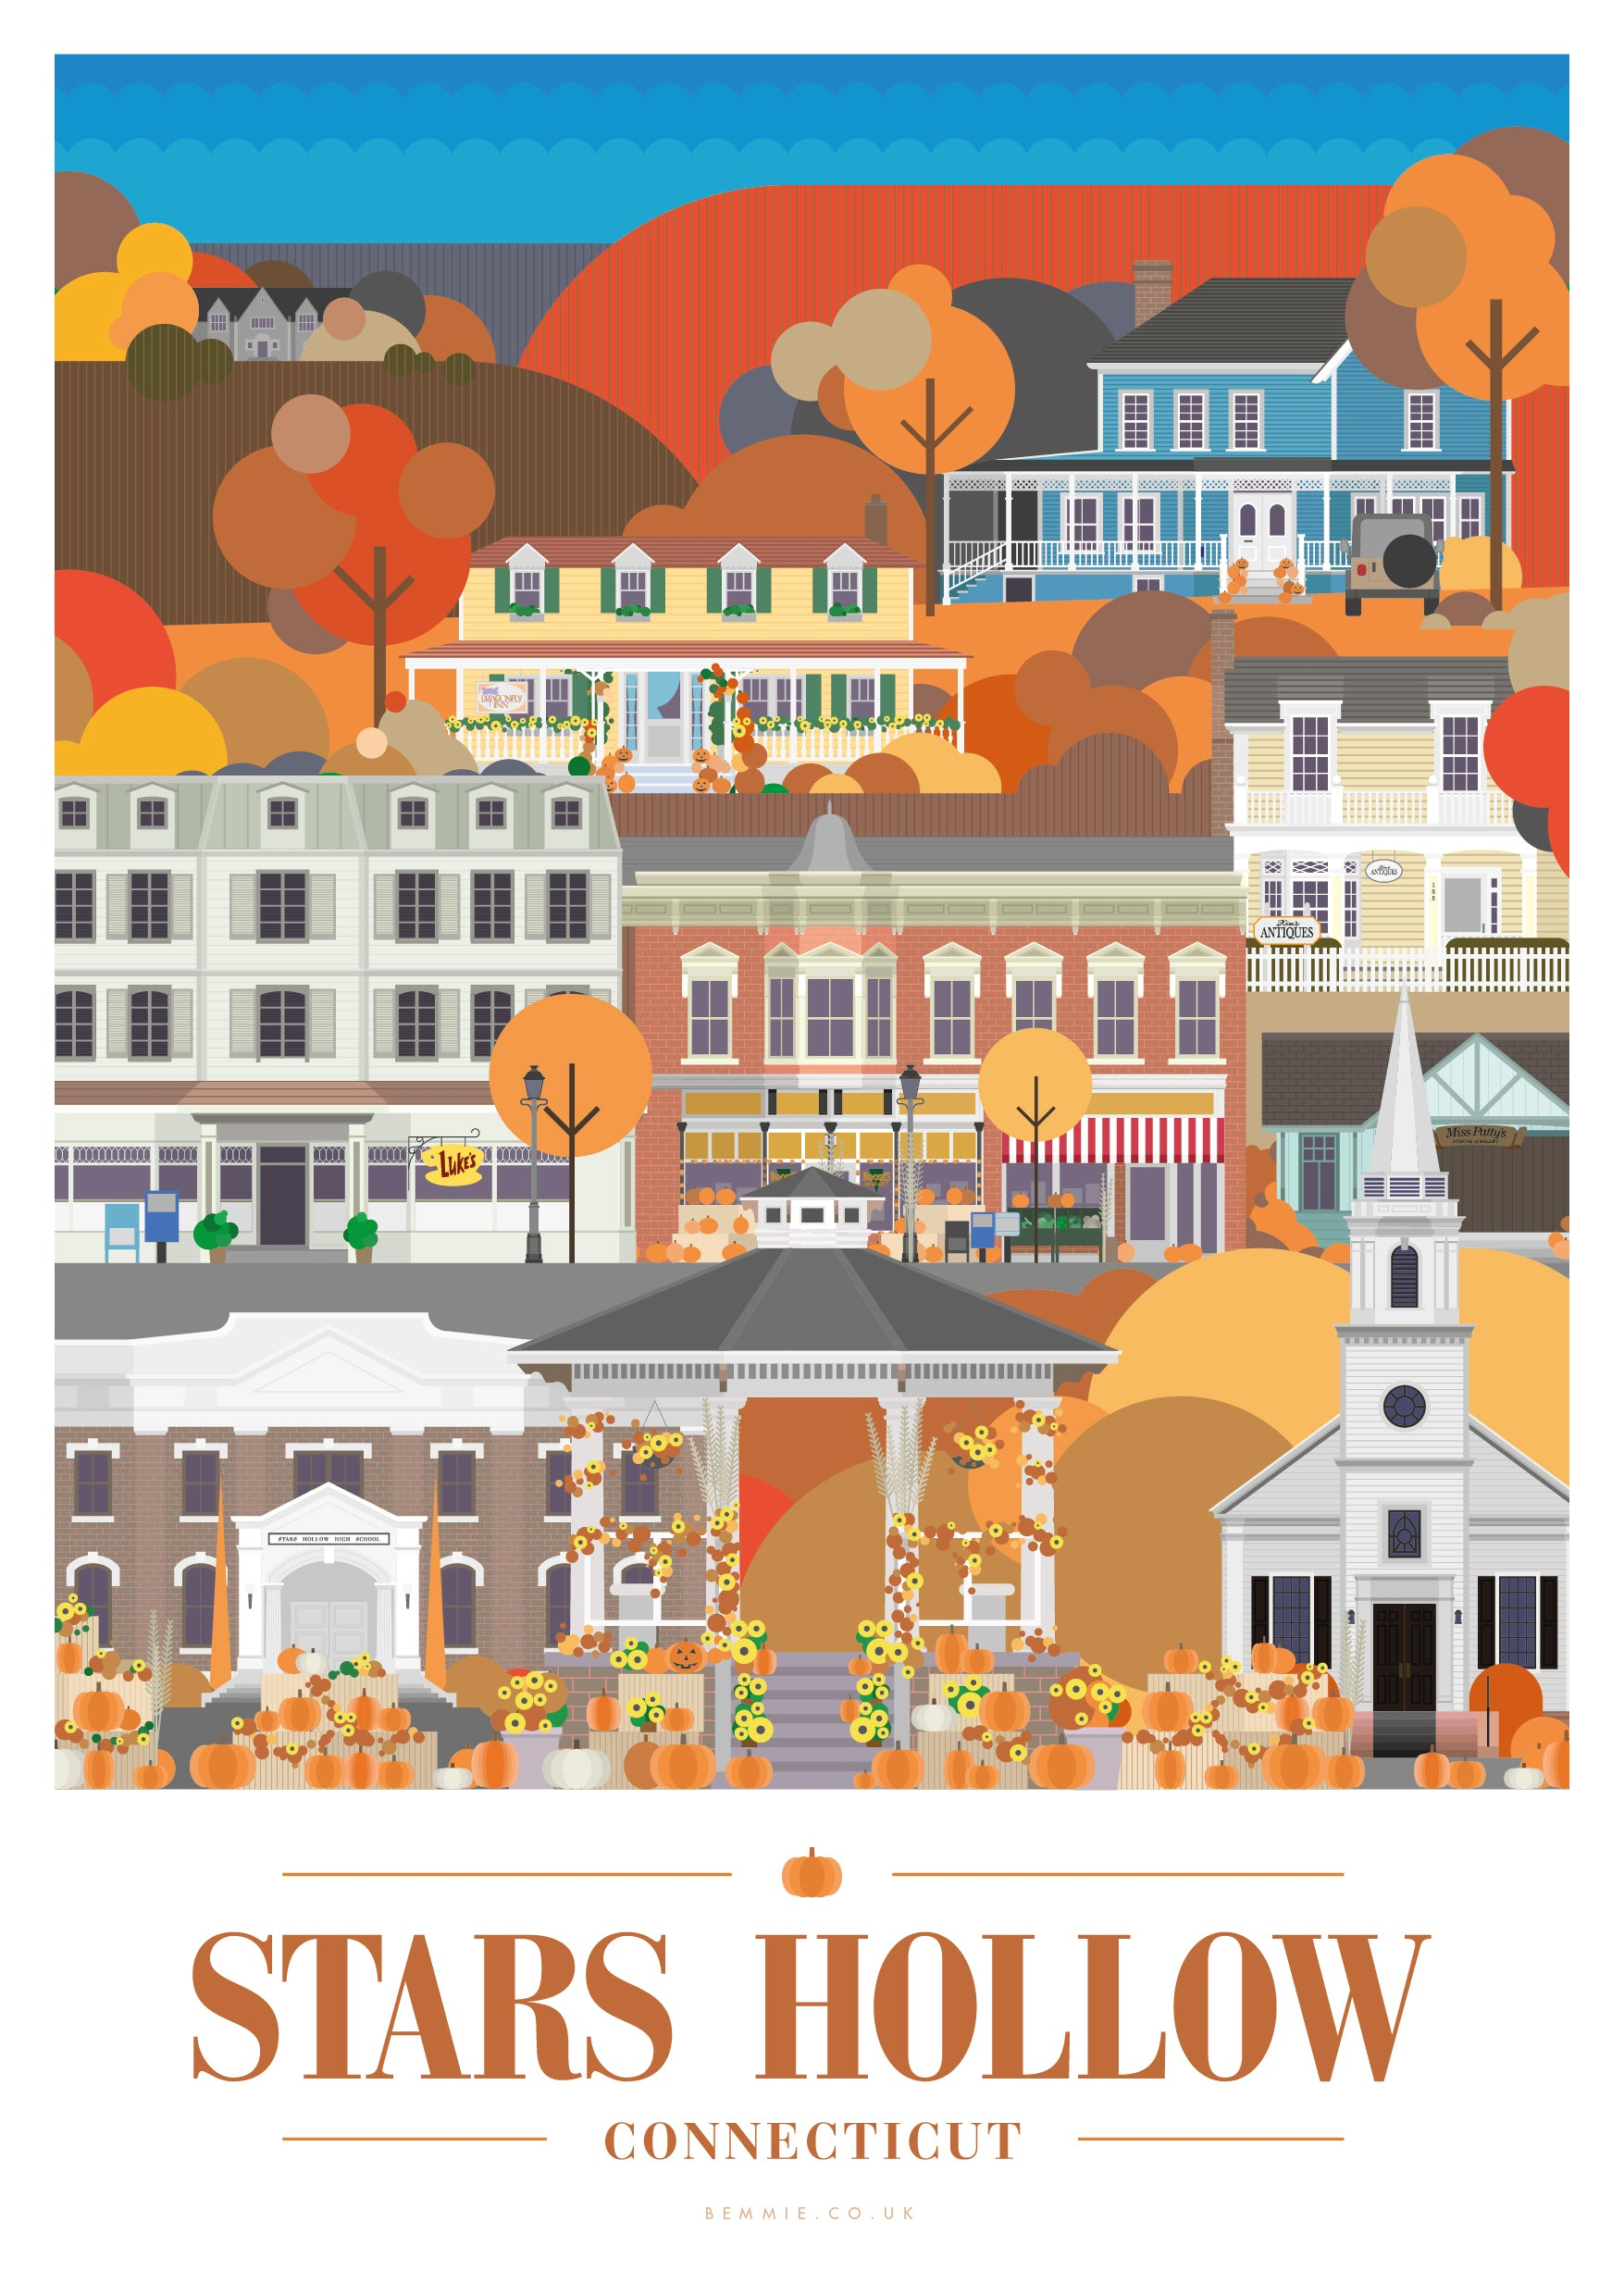 Stars Hollow Print - Inspired by the Gilmore Girls (Autumn Festival) - BemmiesBazaar